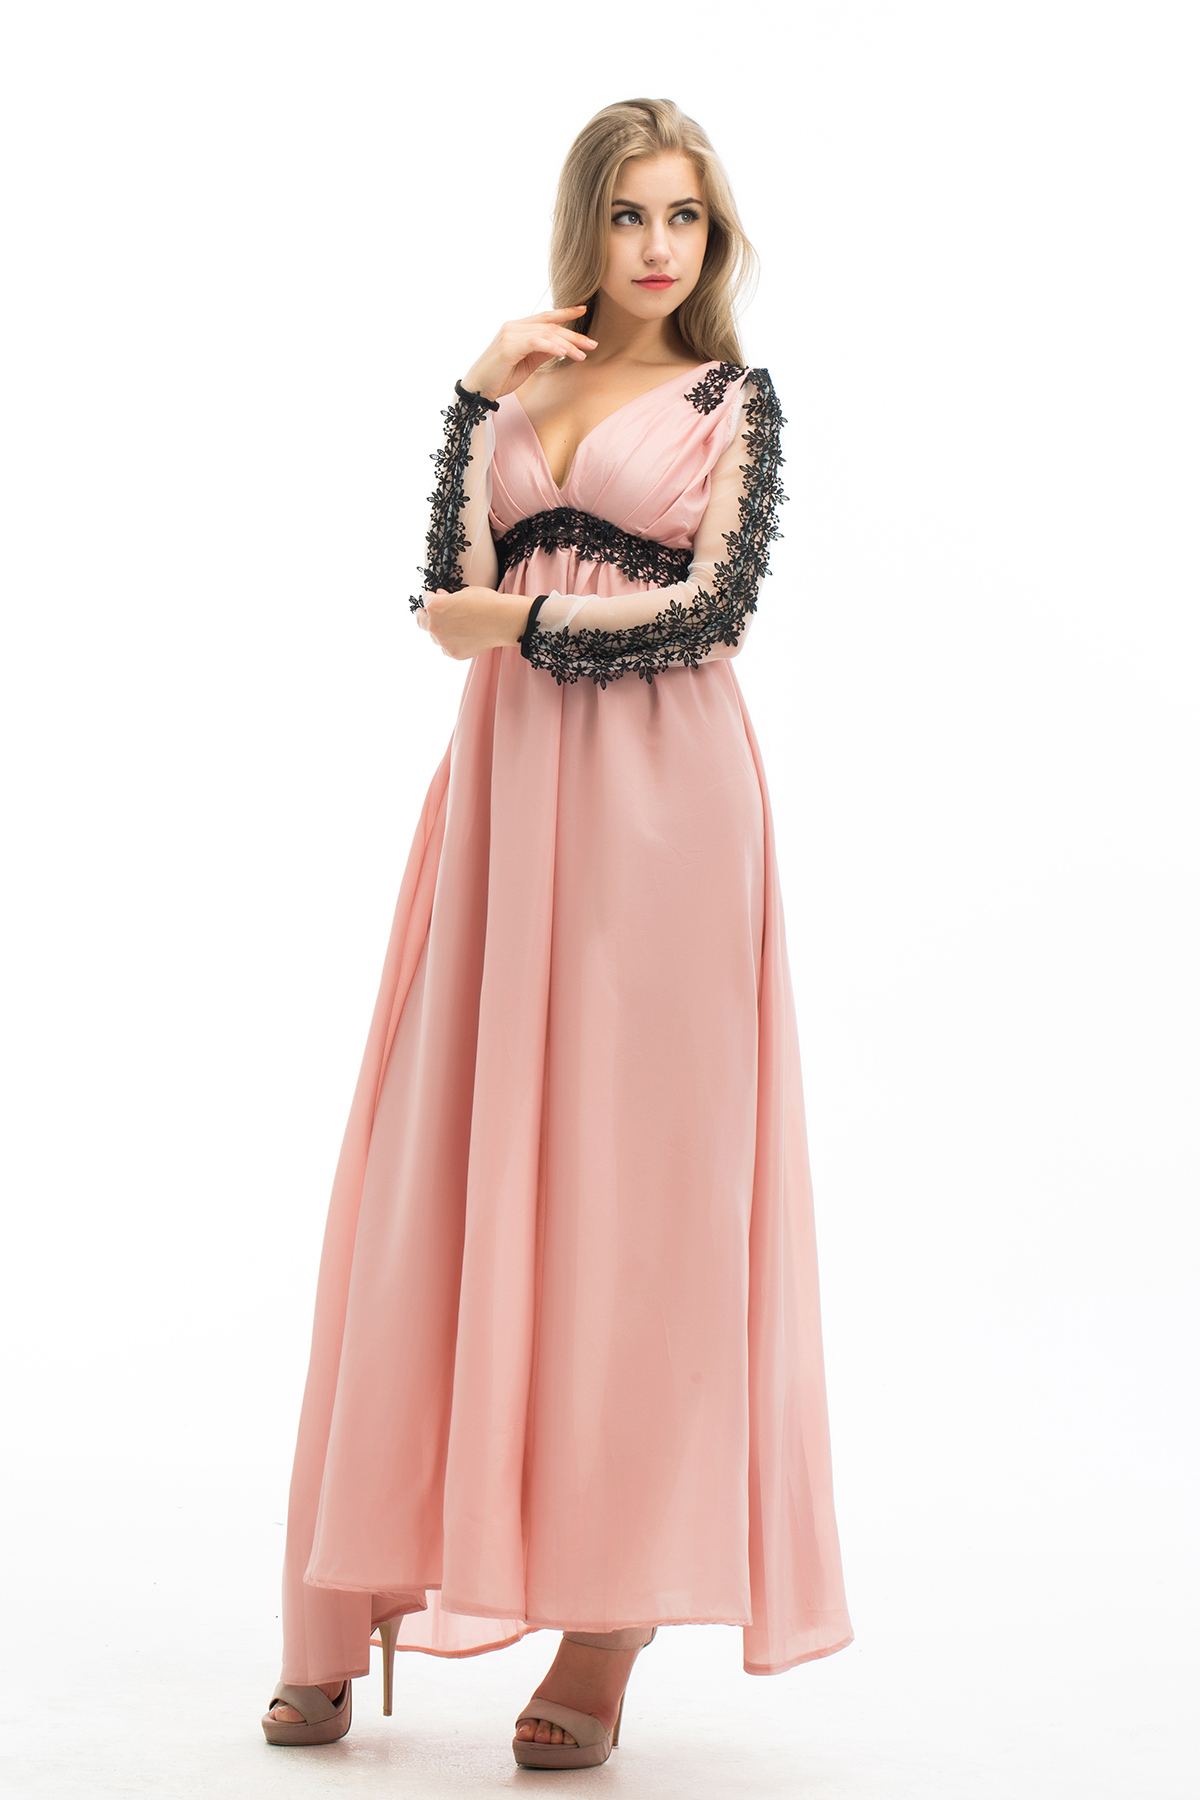 Hirigin Sexy Lace Chiffon Evening Formal Party Prom Long Lace Floral Sleeve V-Neck Gown Long Dress